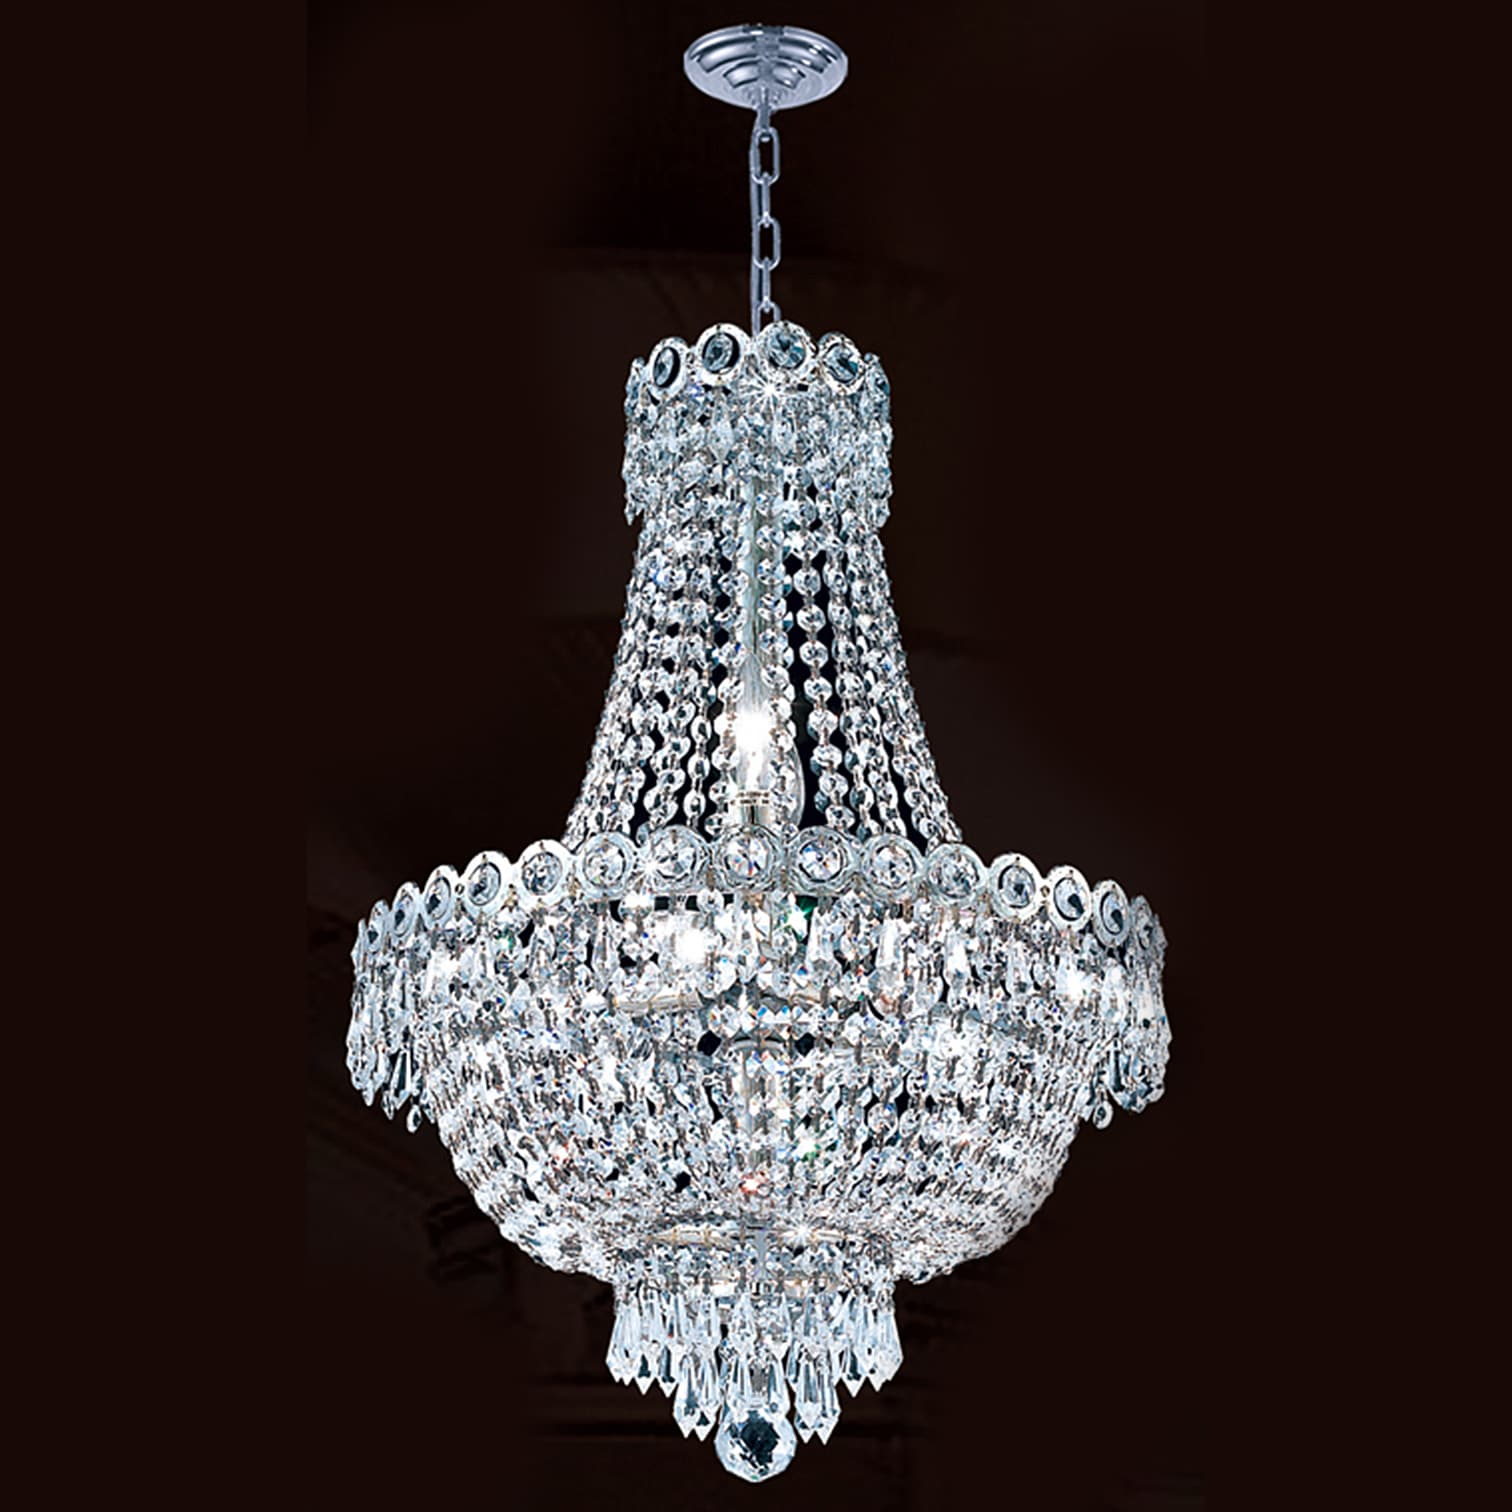 French Empire 8 Light Chrome Finish Clear Crystal Chandelier